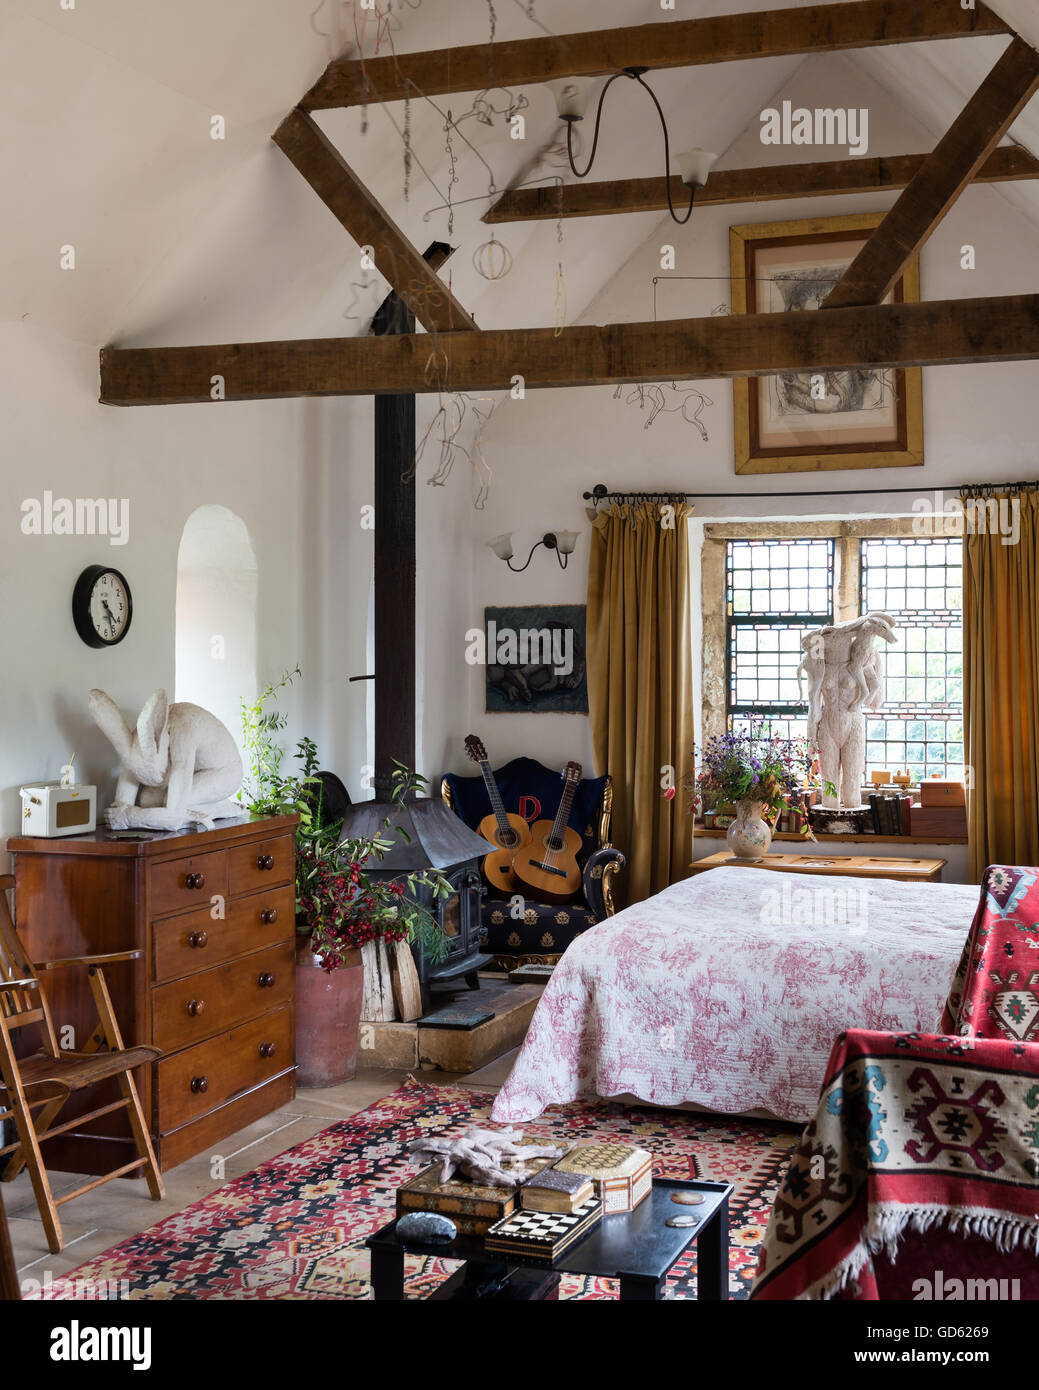 Bright kelim in airy bedroom with ceilings beams, woodburning stove and Sophie ryder sculptures Stock Photo